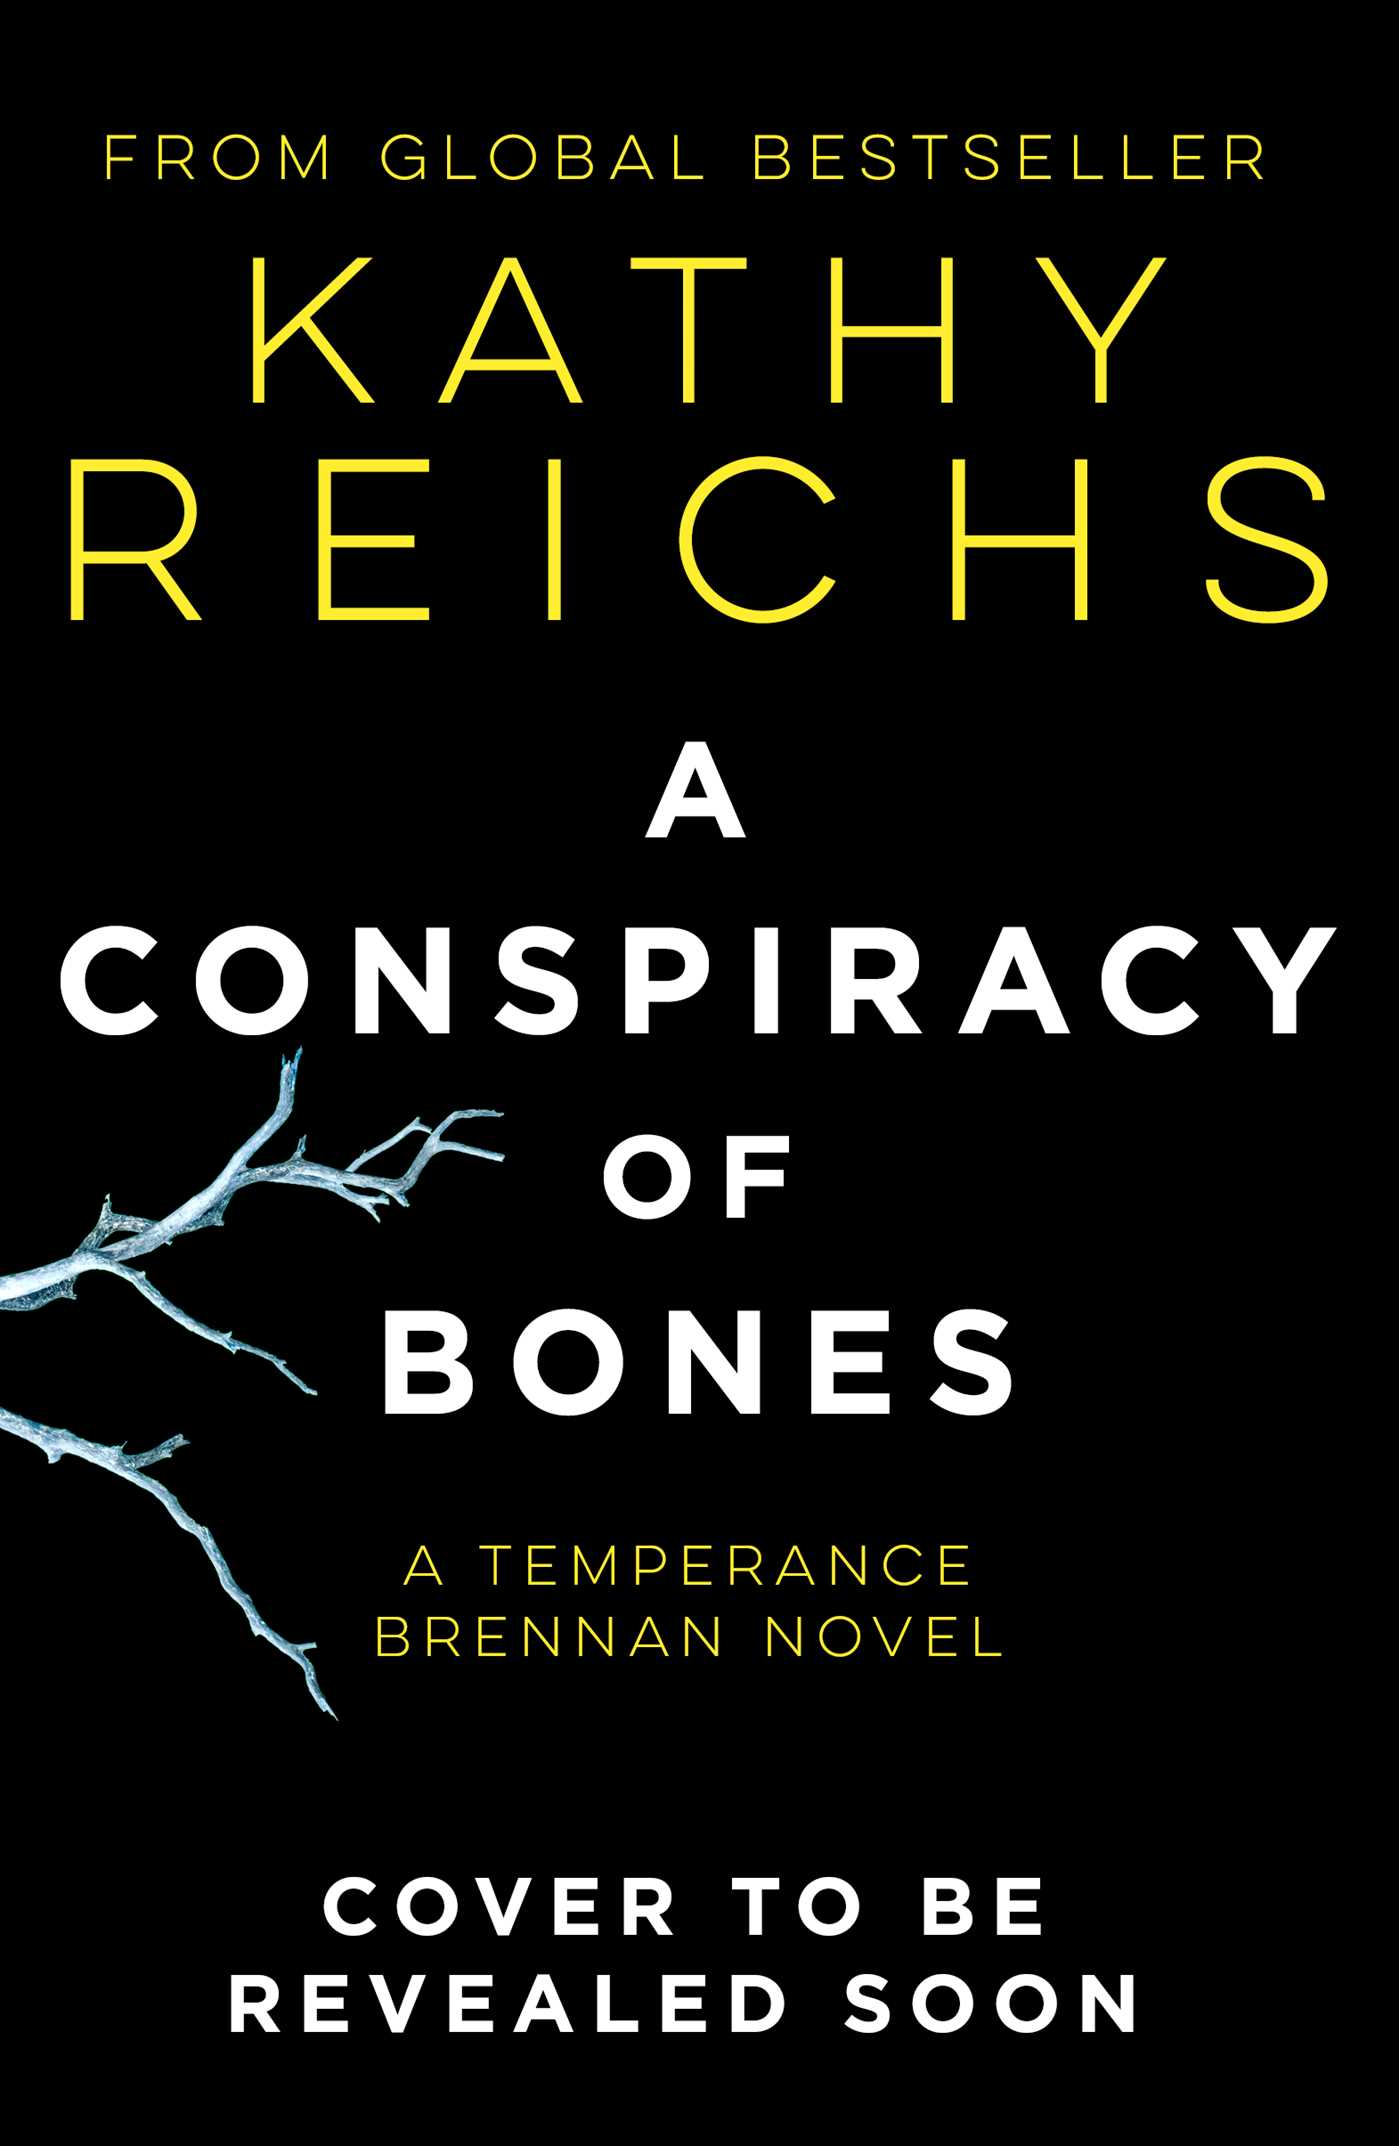 kathy reichs code free ebook download